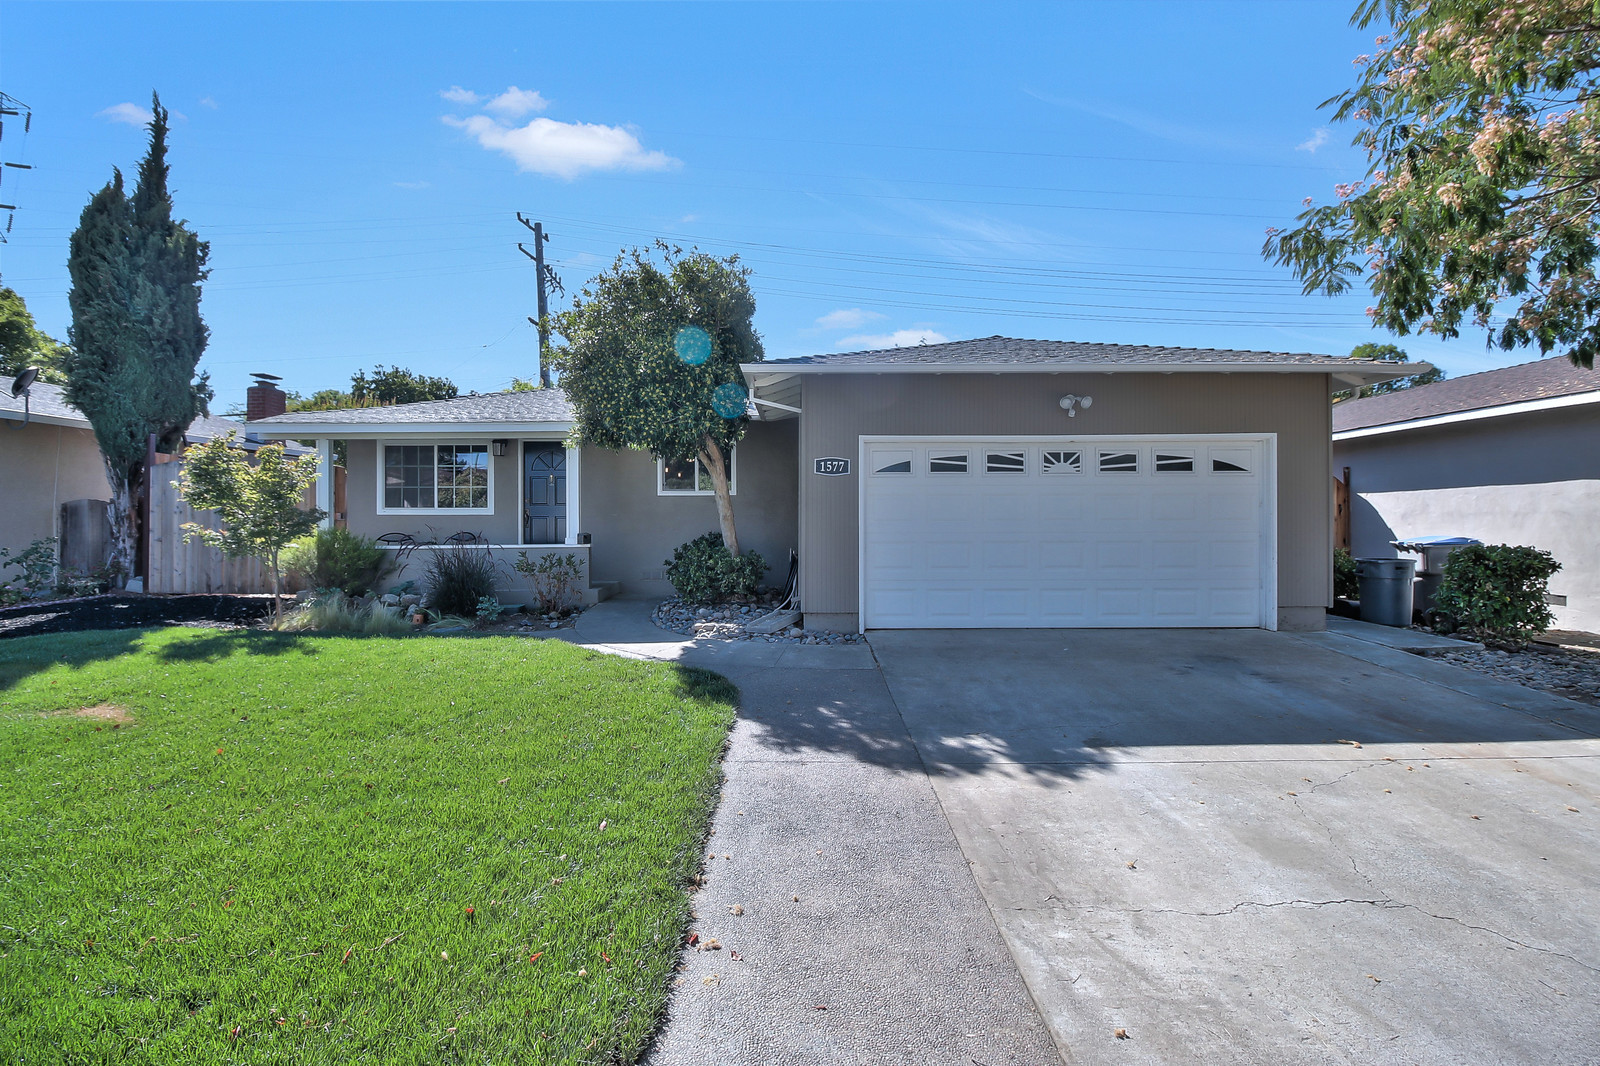 1577 Princeton Drive - This Beautifully Updated Cambrian Home is Amongst Top 10 Rated Dartmouth Middle School and Branham Highschool. It is Convenient to Highway 85 and Sits on a Charming Neighborhood Street. This Home has Many Upates Throughout, The Kitchen is Completely Updated with a Large Island, JennAir Convection Oven and Range with a Down Air Vent...List Price: $898,000